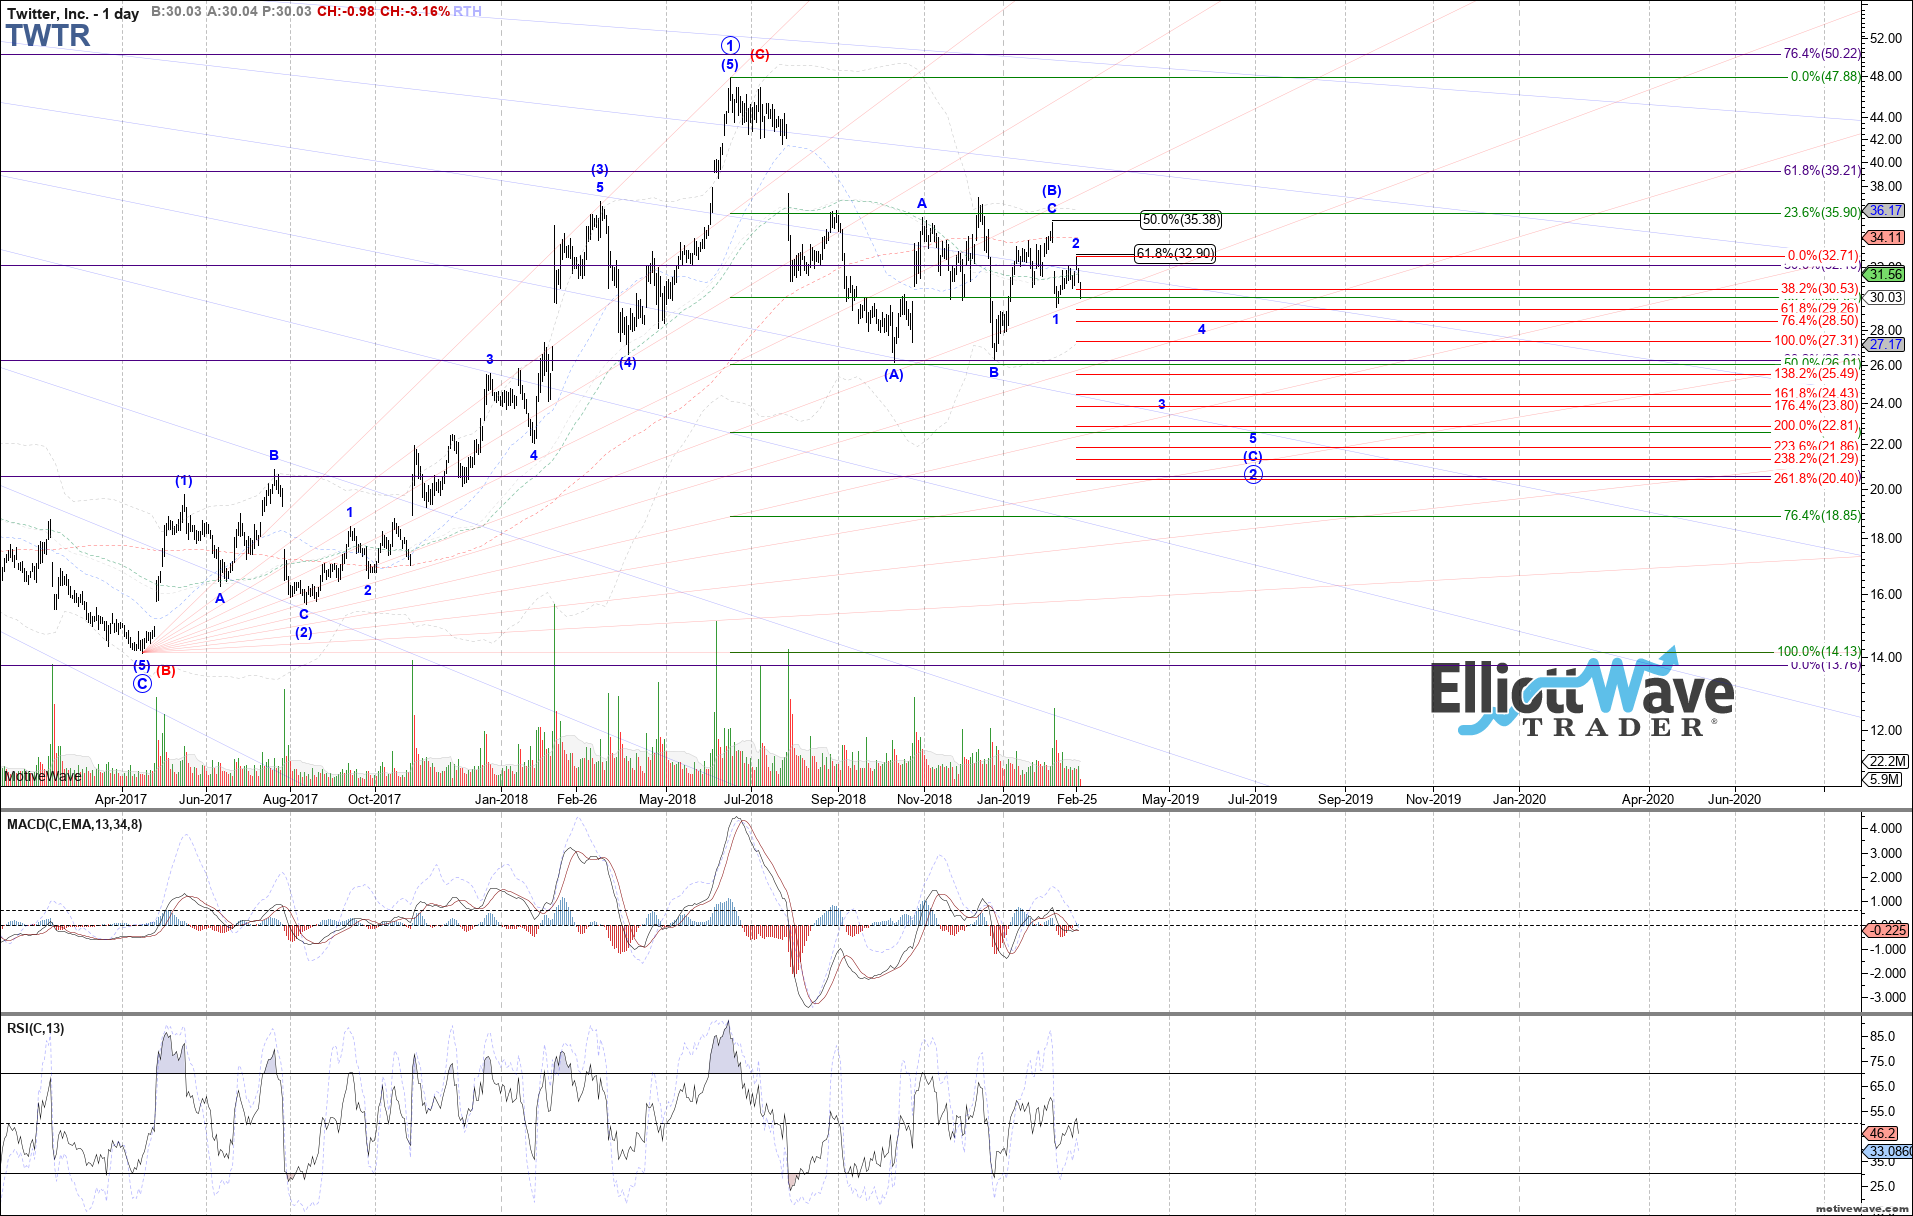 TWTR - Primary Analysis - Feb-27 0726 AM (1 day)